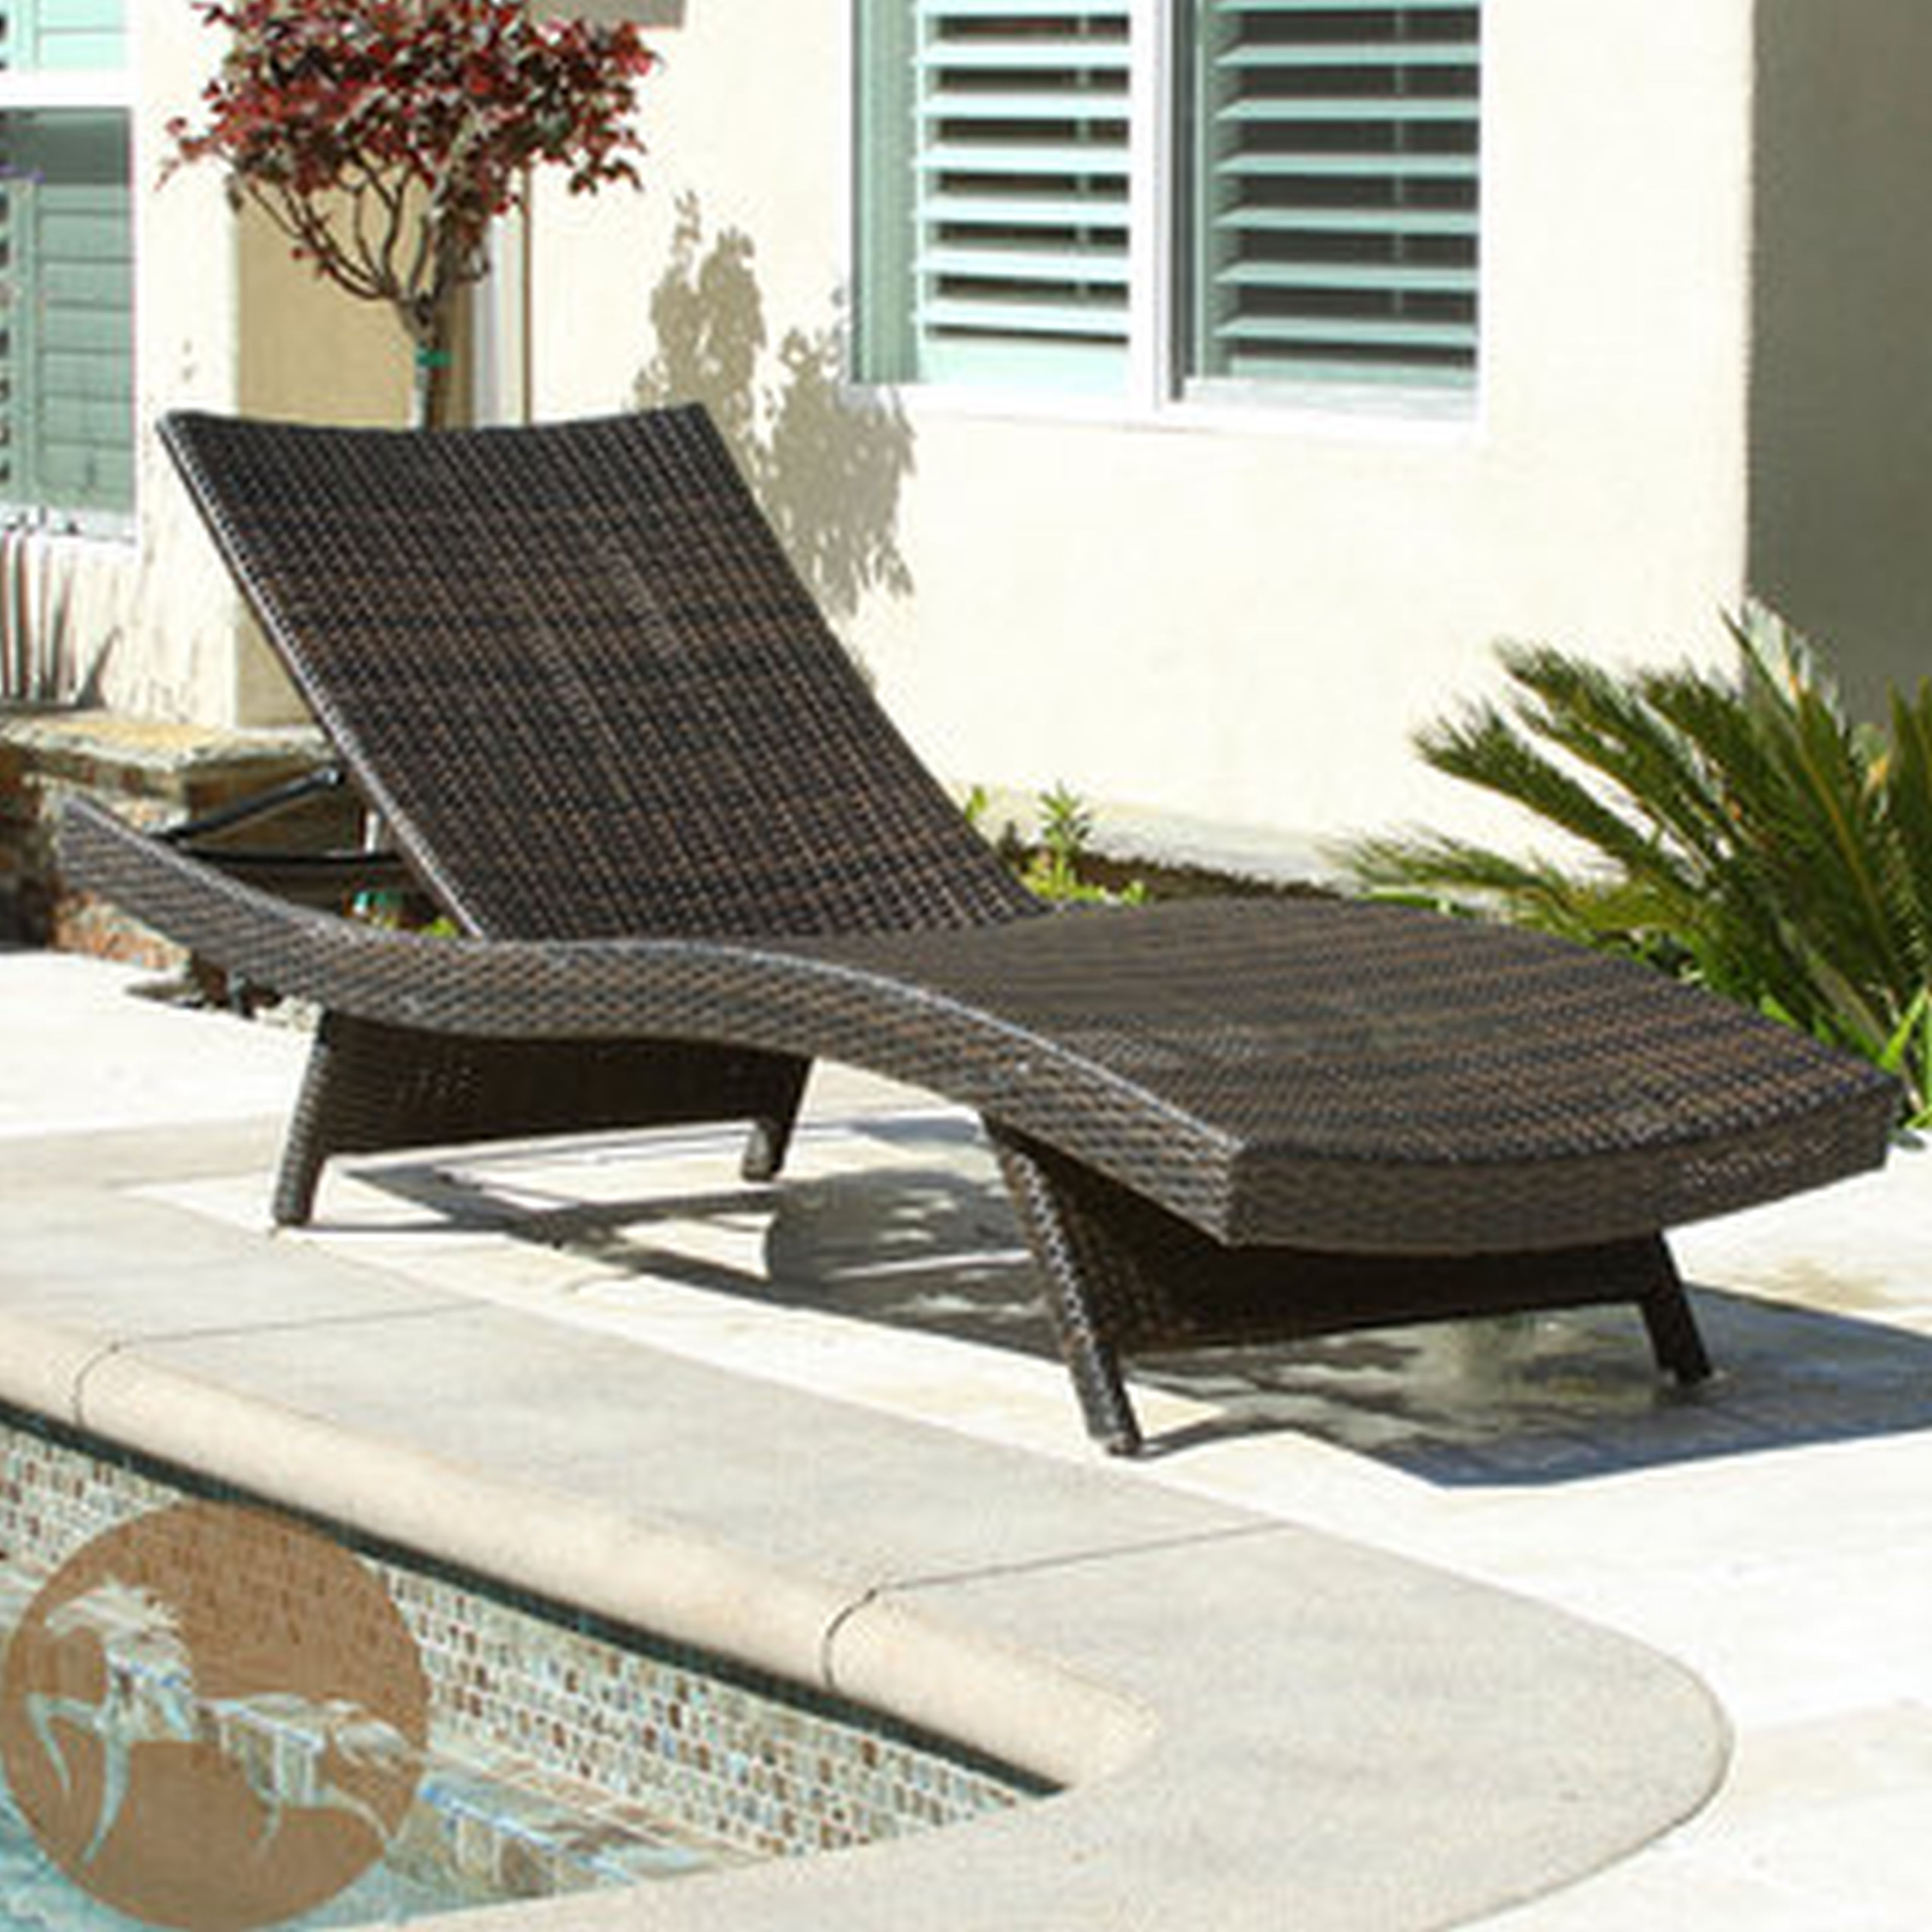 Popular Hotel Pool Chaise Lounge Chairs • Lounge Chairs Ideas With Hotel Chaise Lounge Chairs (View 4 of 15)